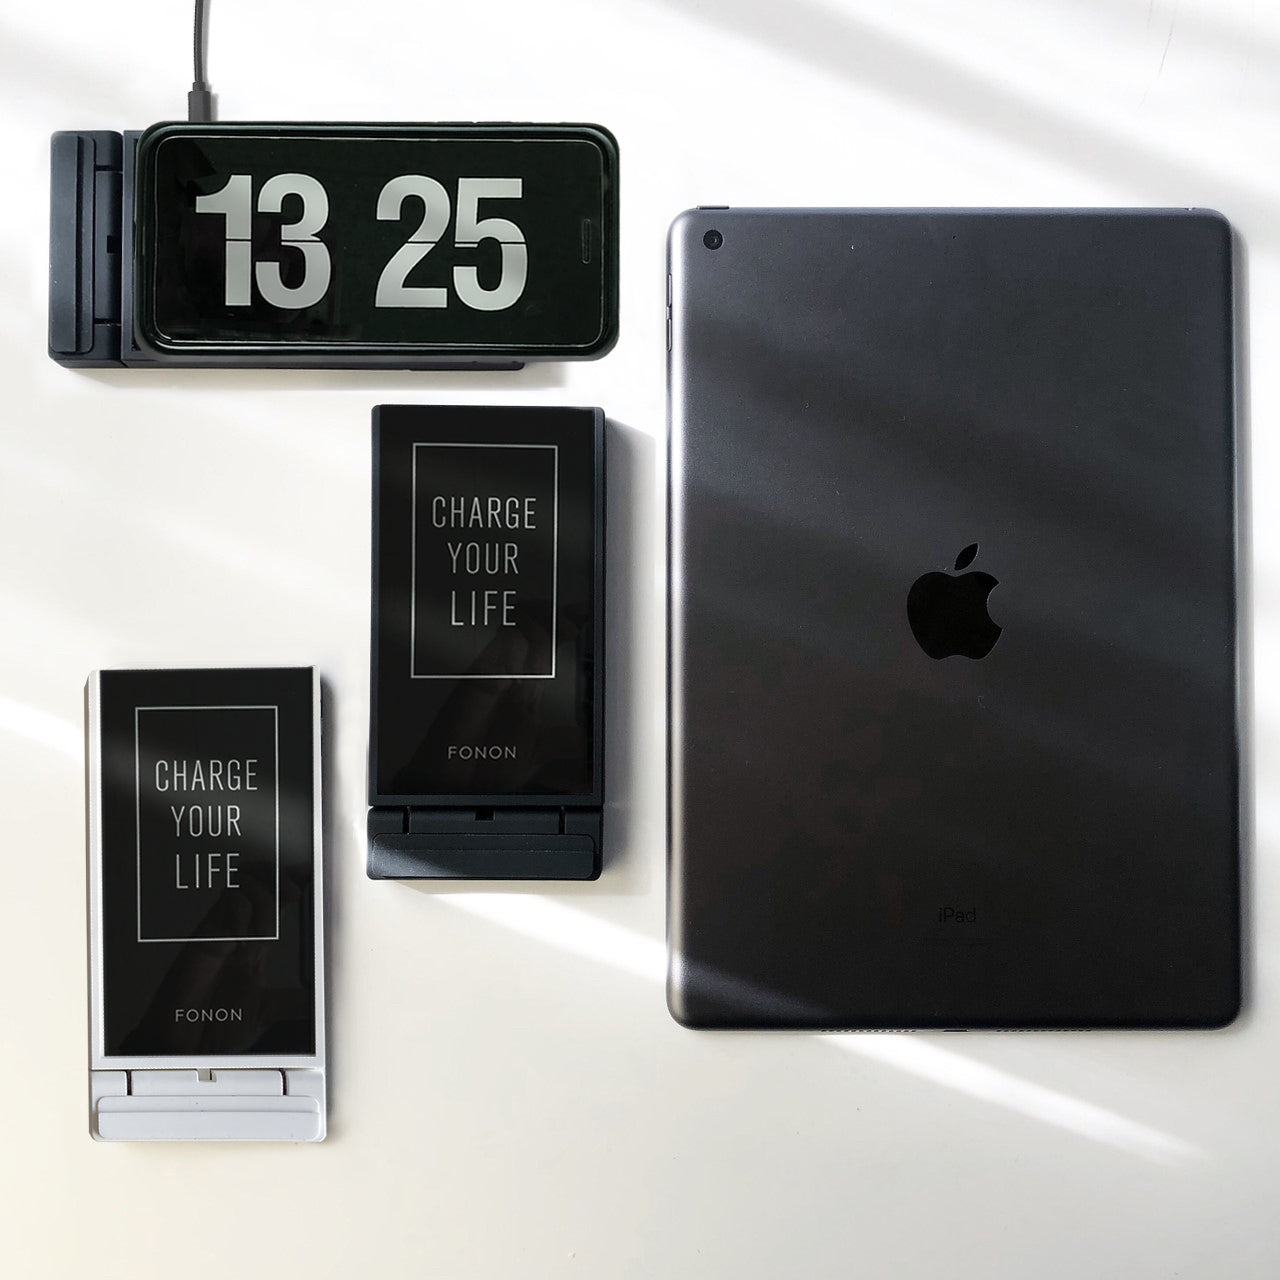 WIRELESS CHARGING STAND - TYPO SERIES - FONON CHARGE YOUR LIFE Black